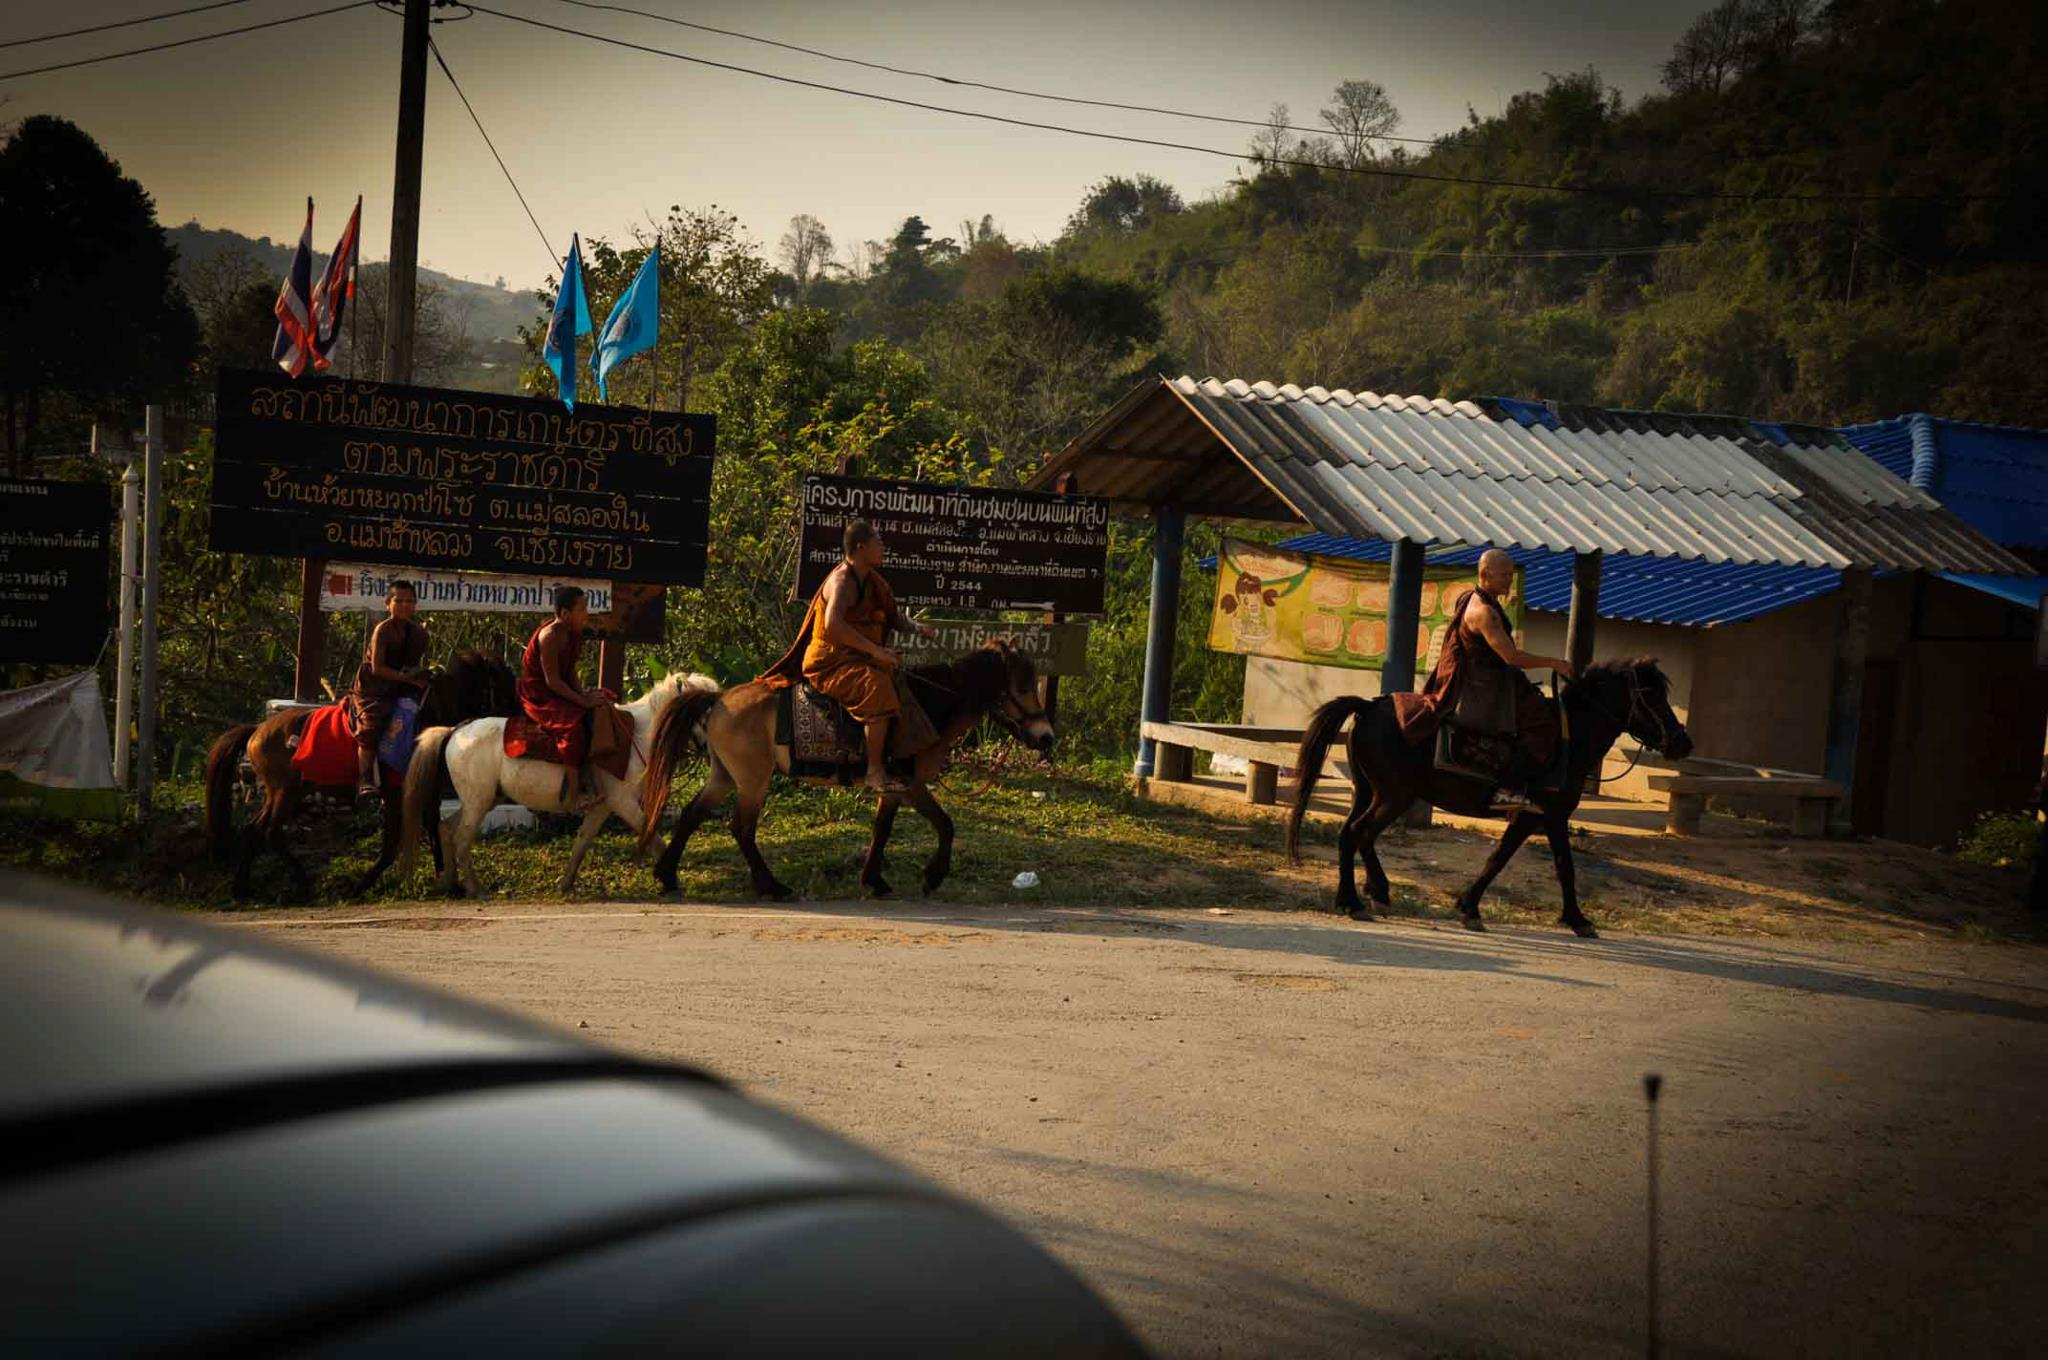 Observing the lifestyles of monks riding horses at the Golden Horse Monastery, Chiang Rai